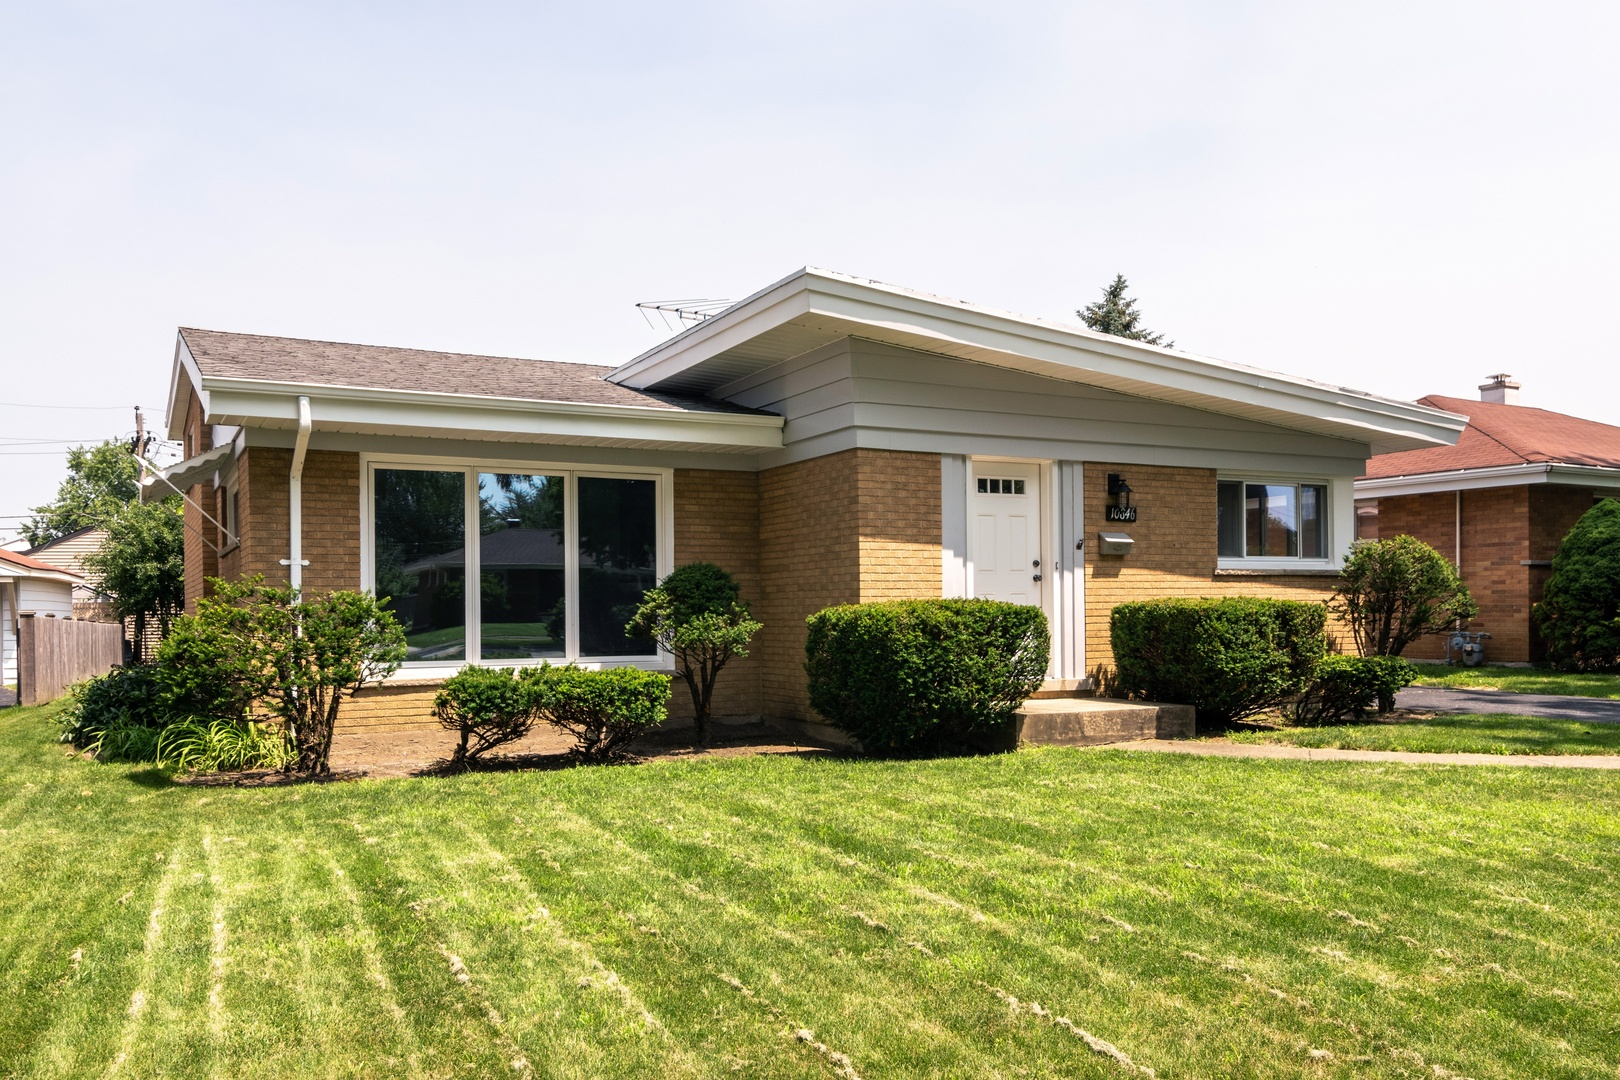 10846 Hastings, Westchester, Illinois, 60154